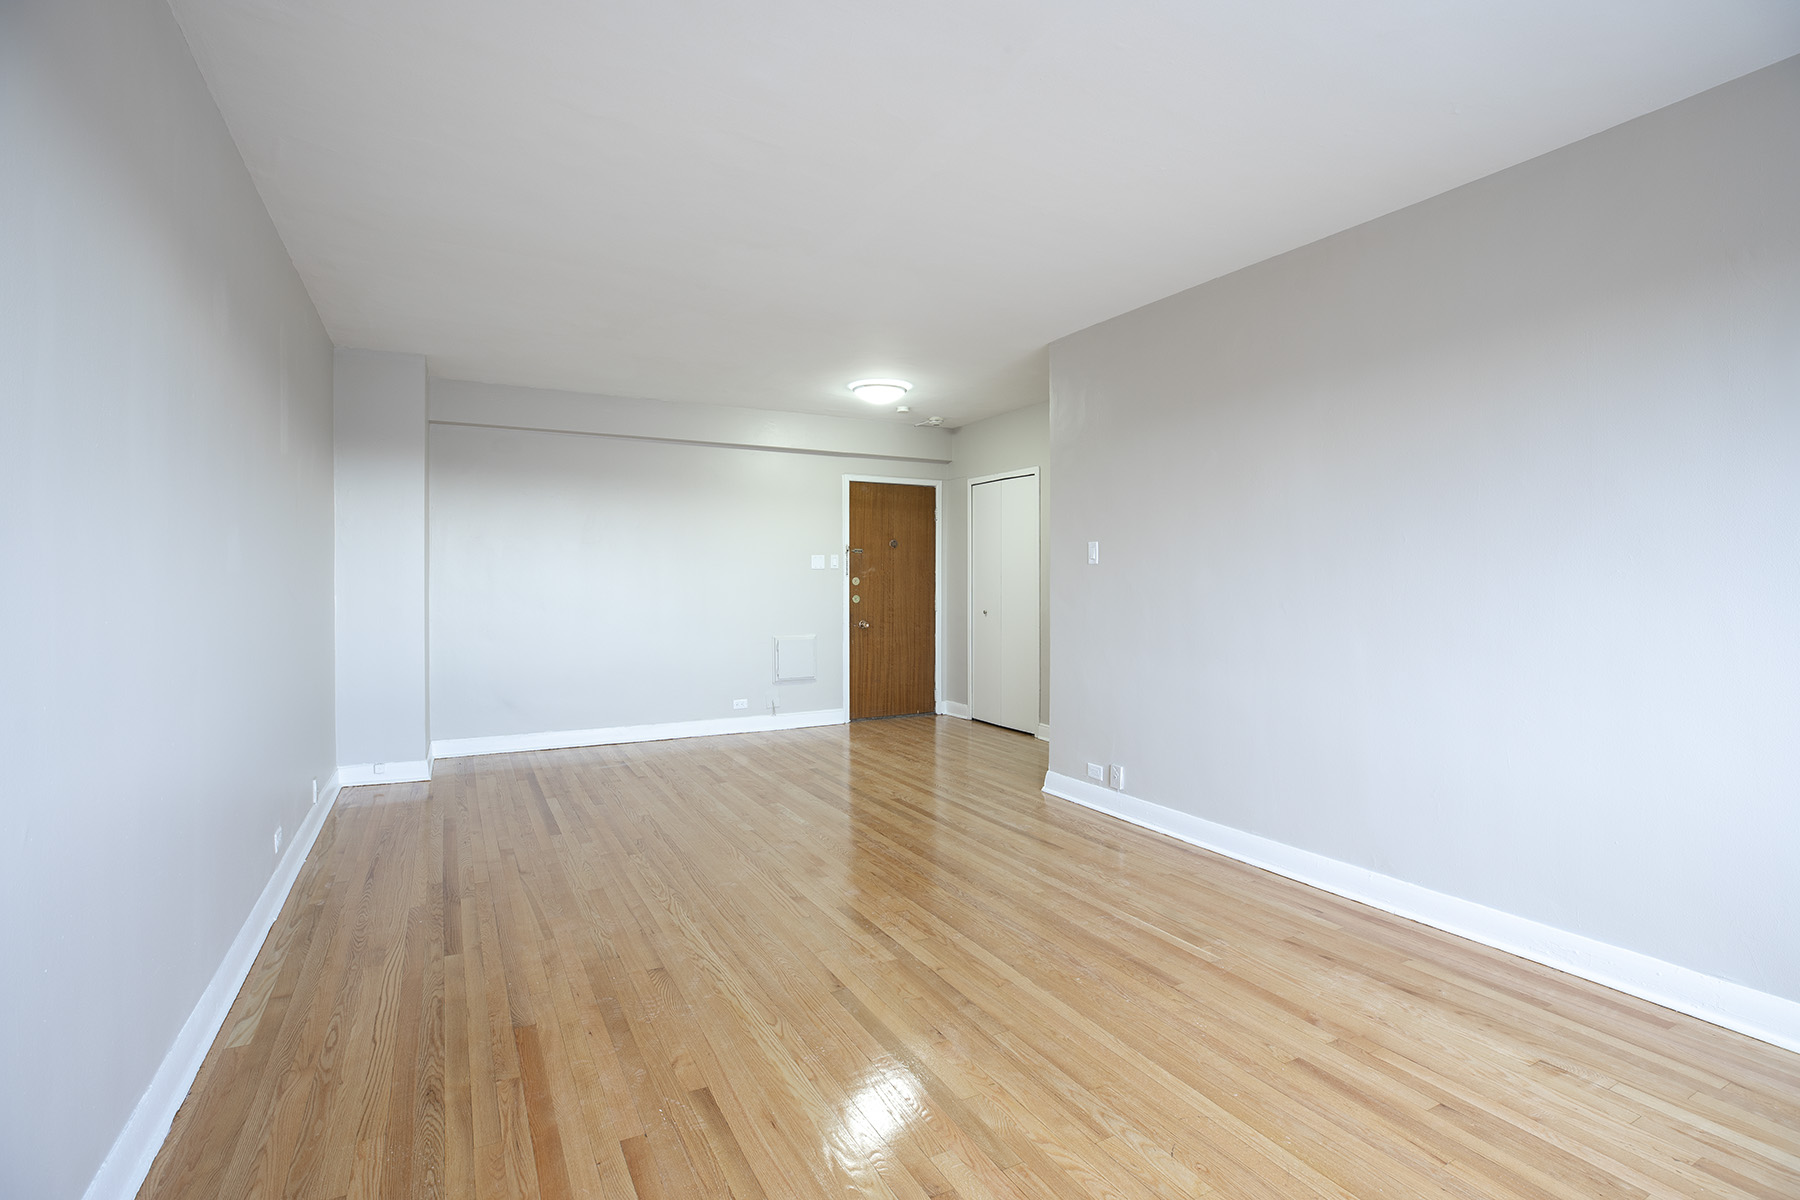 2 bedroom Apartments for rent in Montreal West at 6955 Fielding - Photo 14 - RentQuebecApartments – L401542